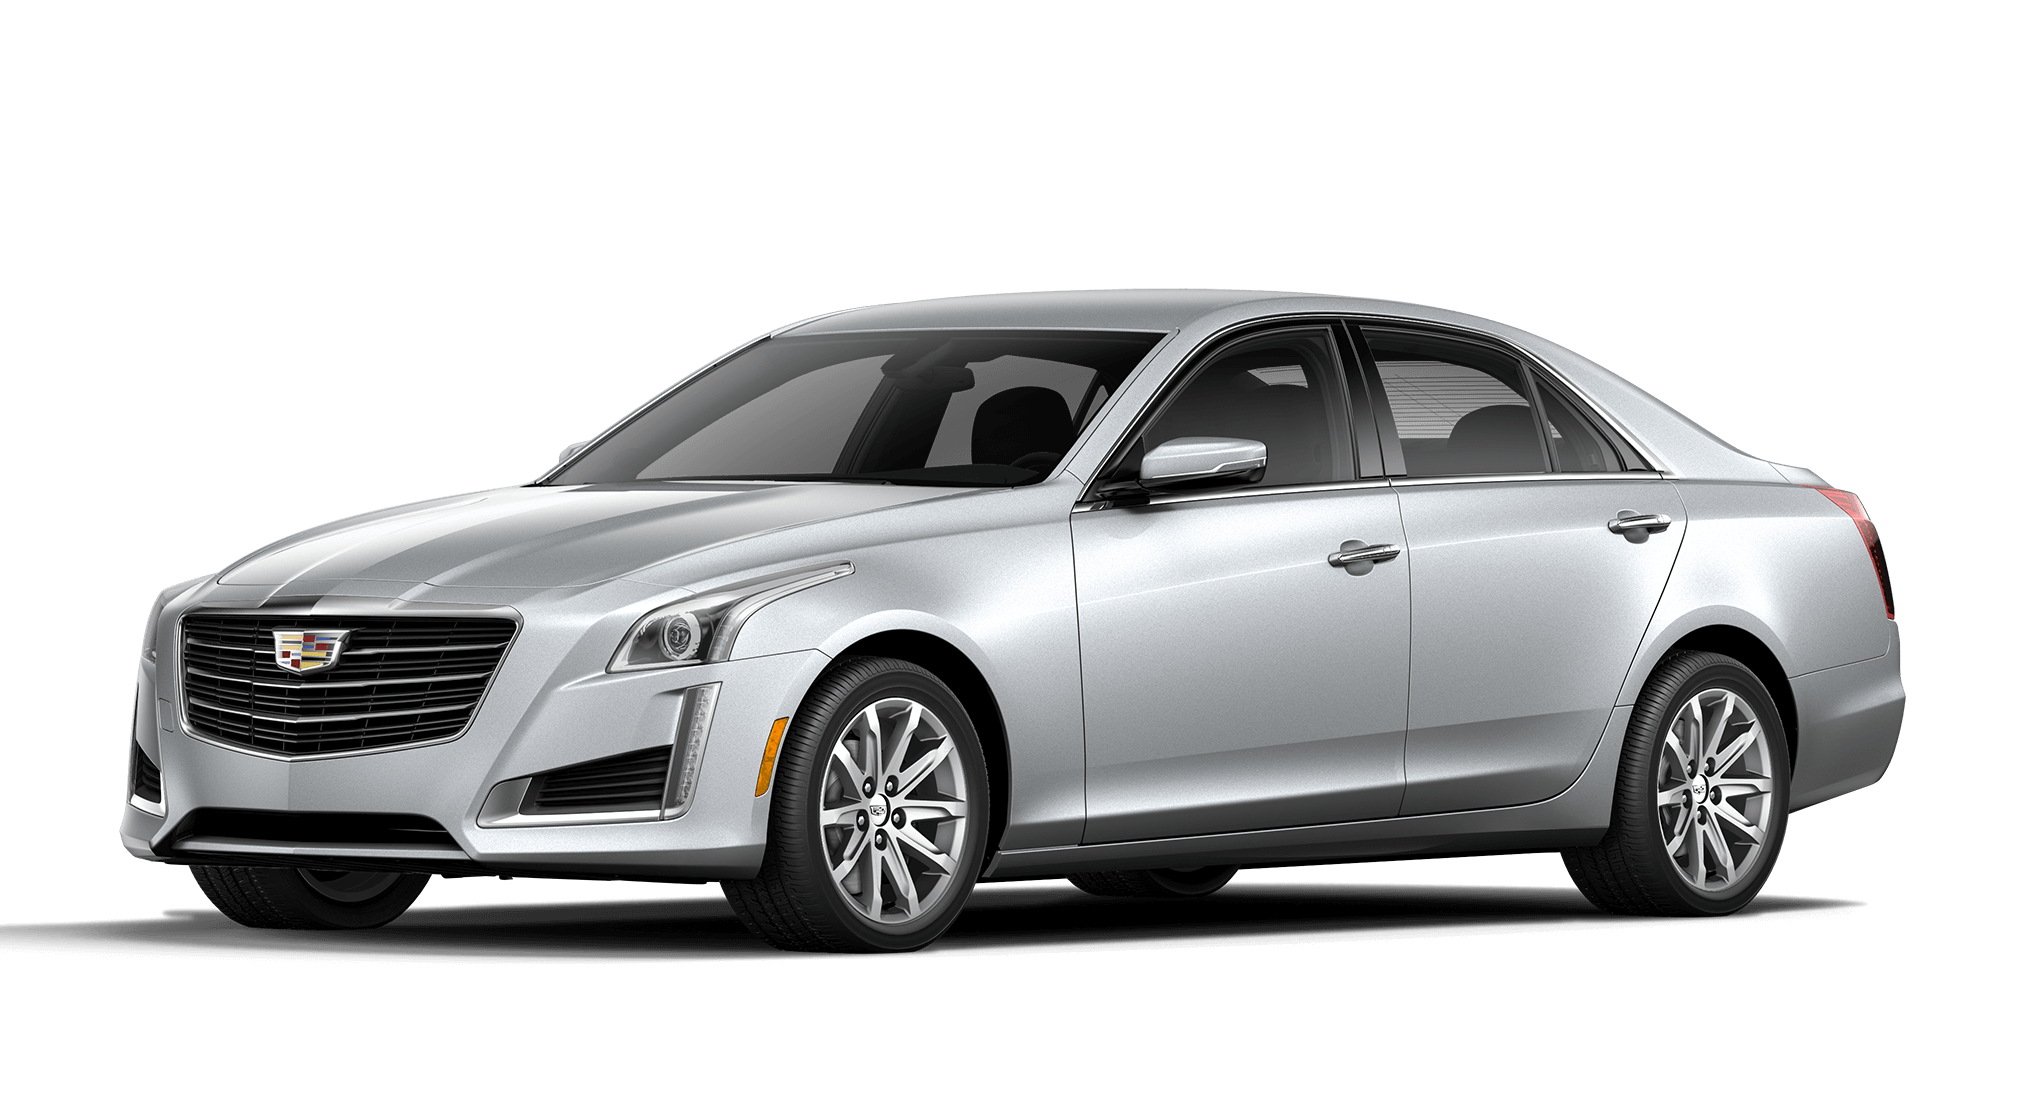 Radiant Silver Cadillac CTS